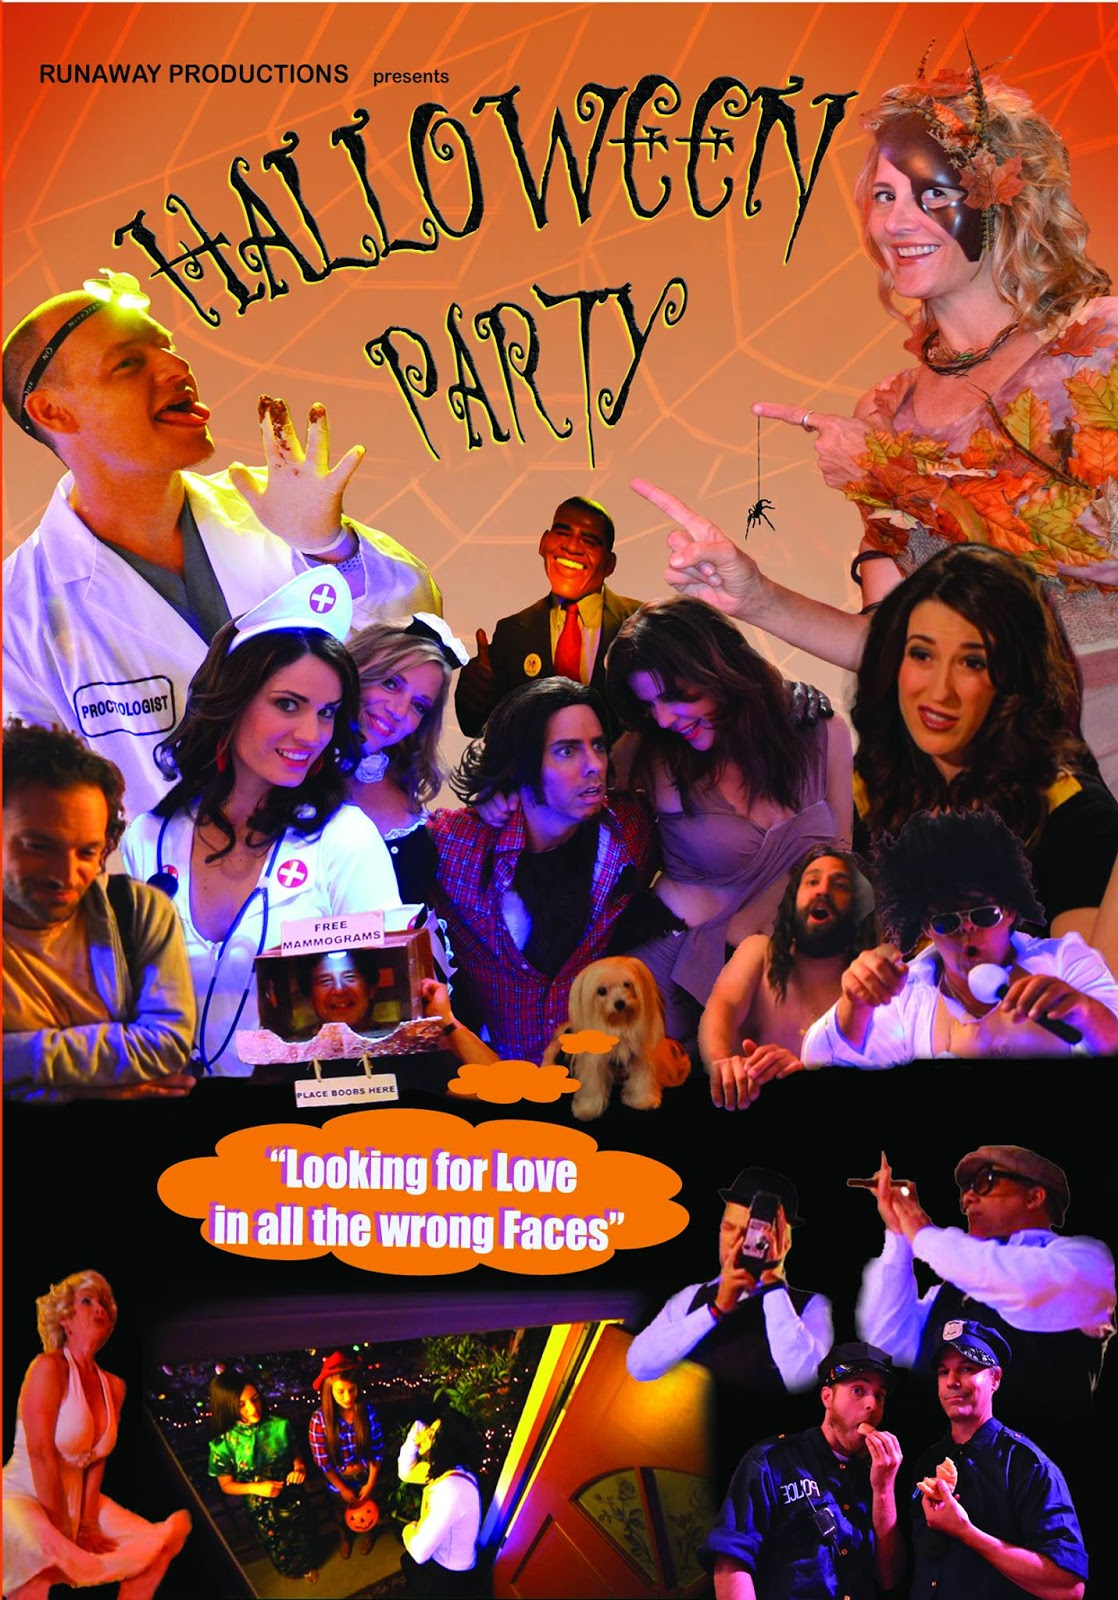 The Horrors of Halloween: HALLOWEEN PARTY (2012) Trailer, Posters ...